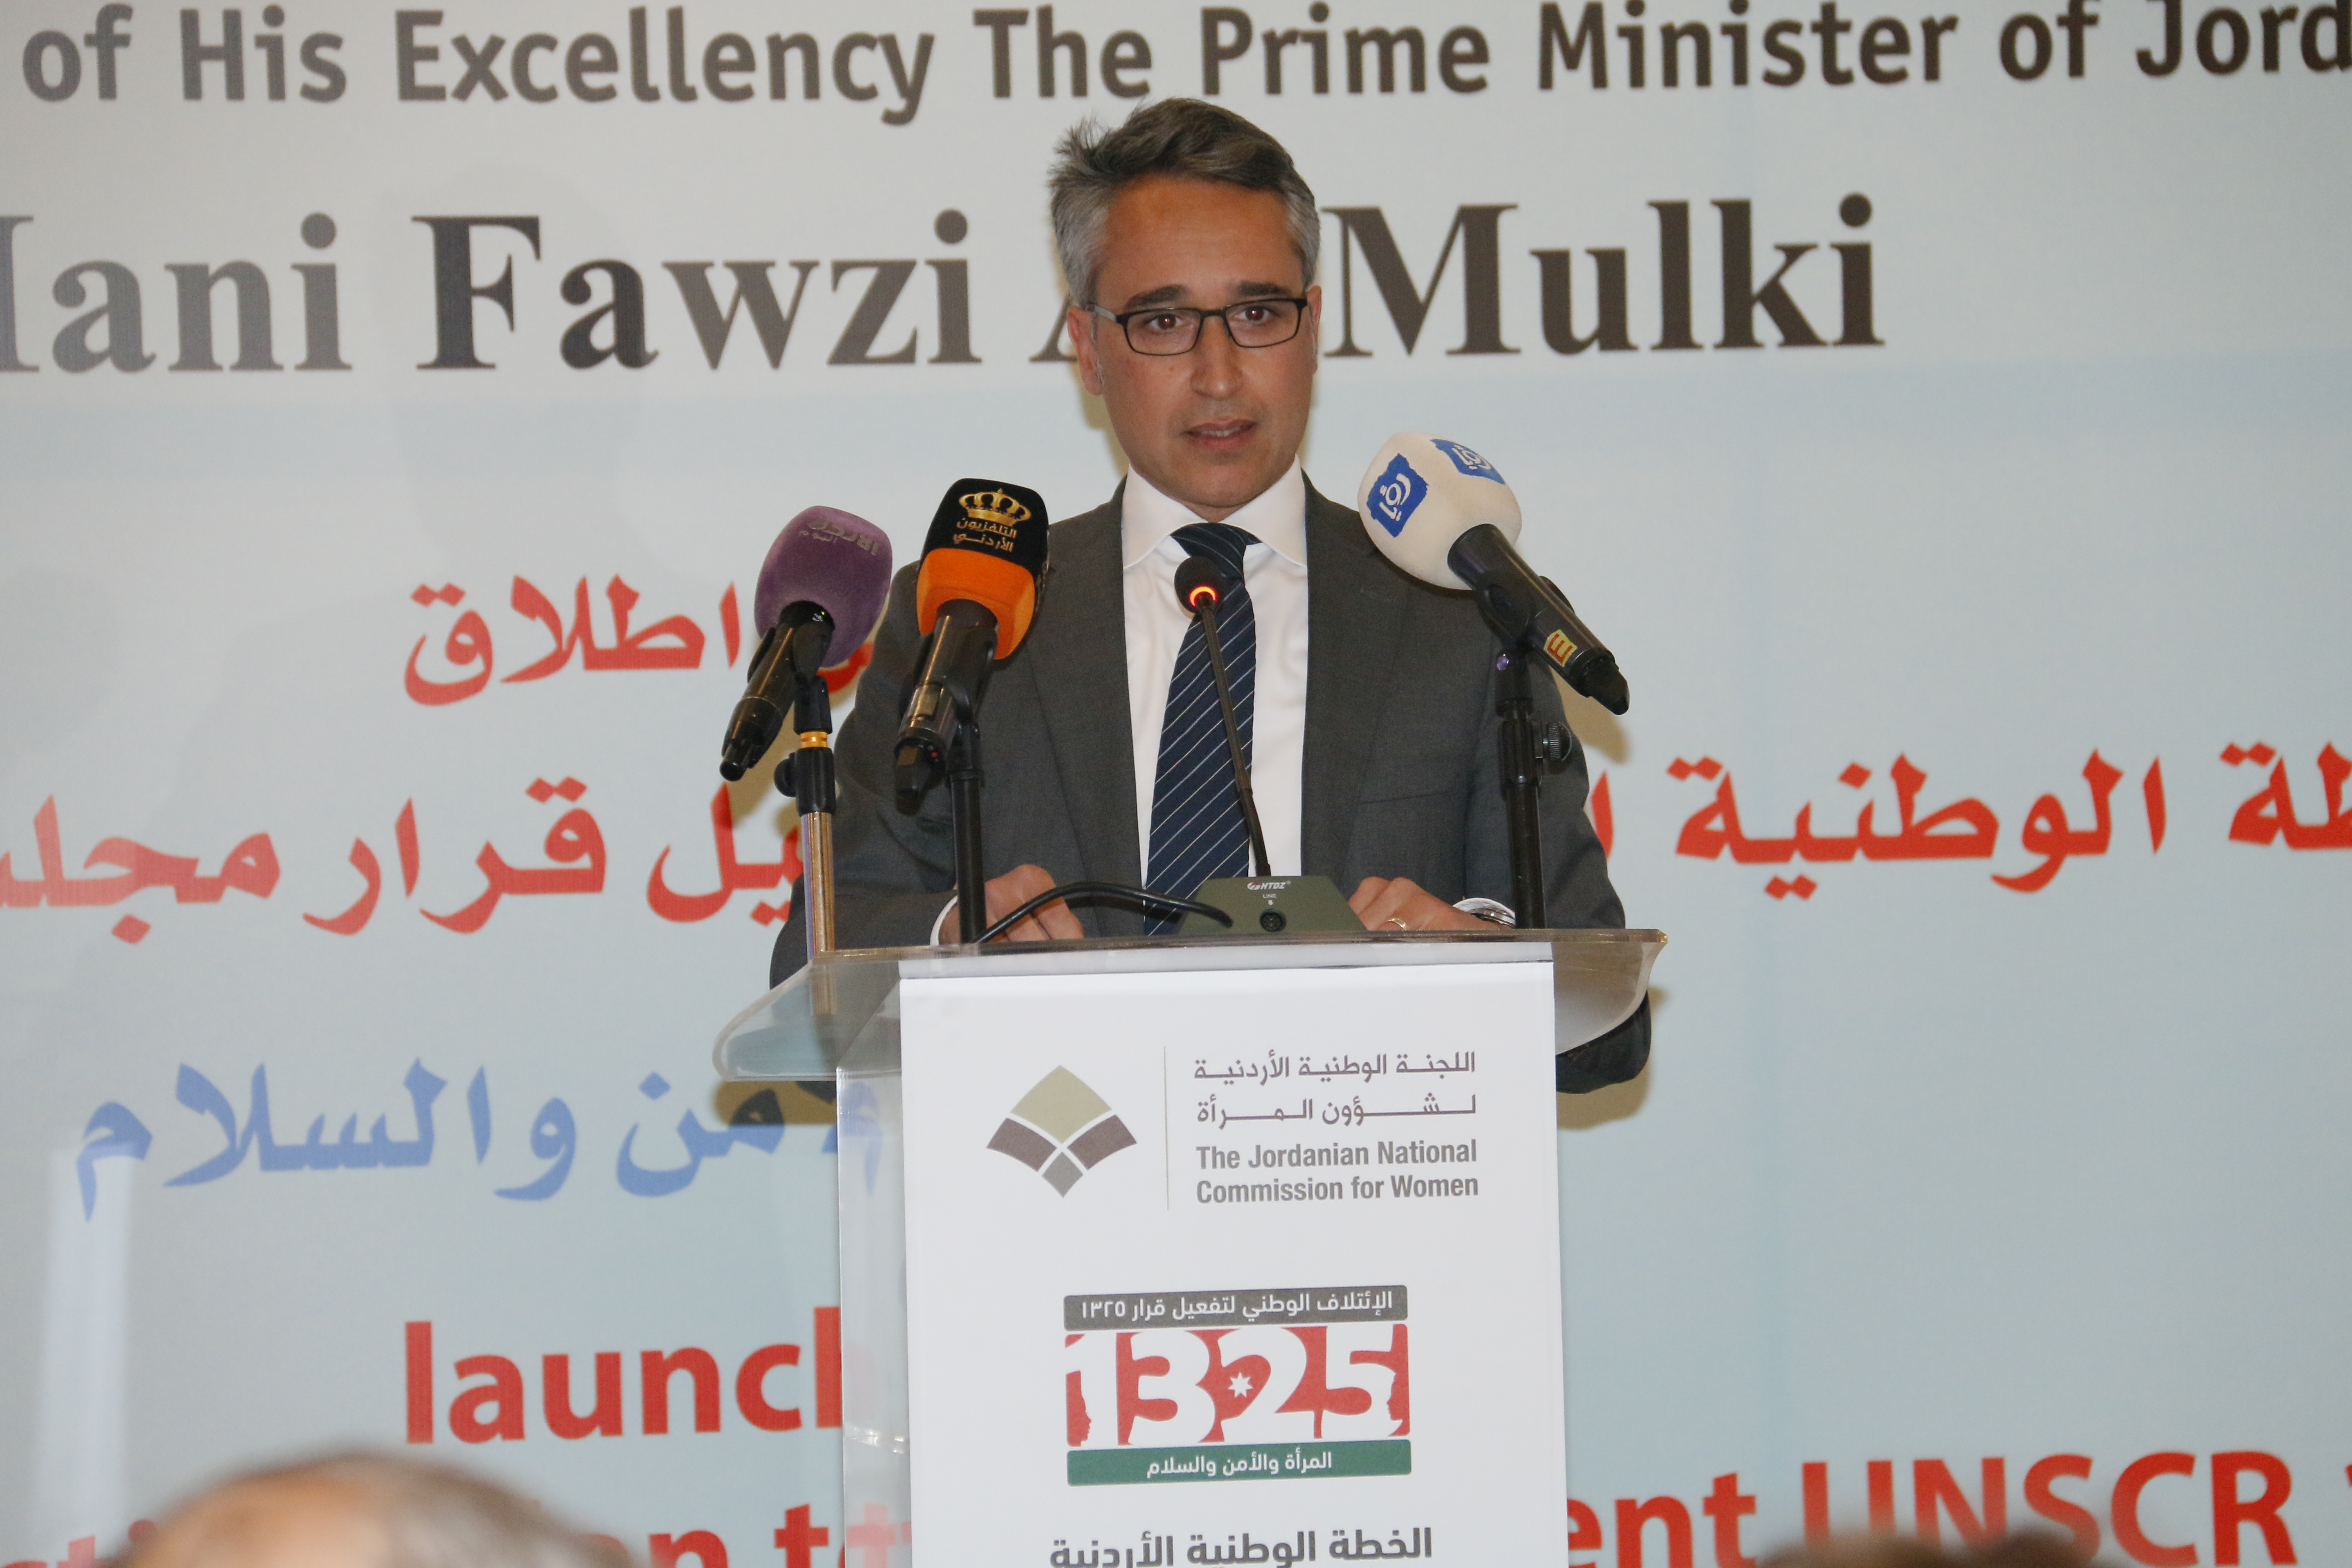 Ziad Sheikh, UN Women Jordan Representative, attends the JONAP Launch event commencing the ceremony with opening remarks on behalf of UN Women.